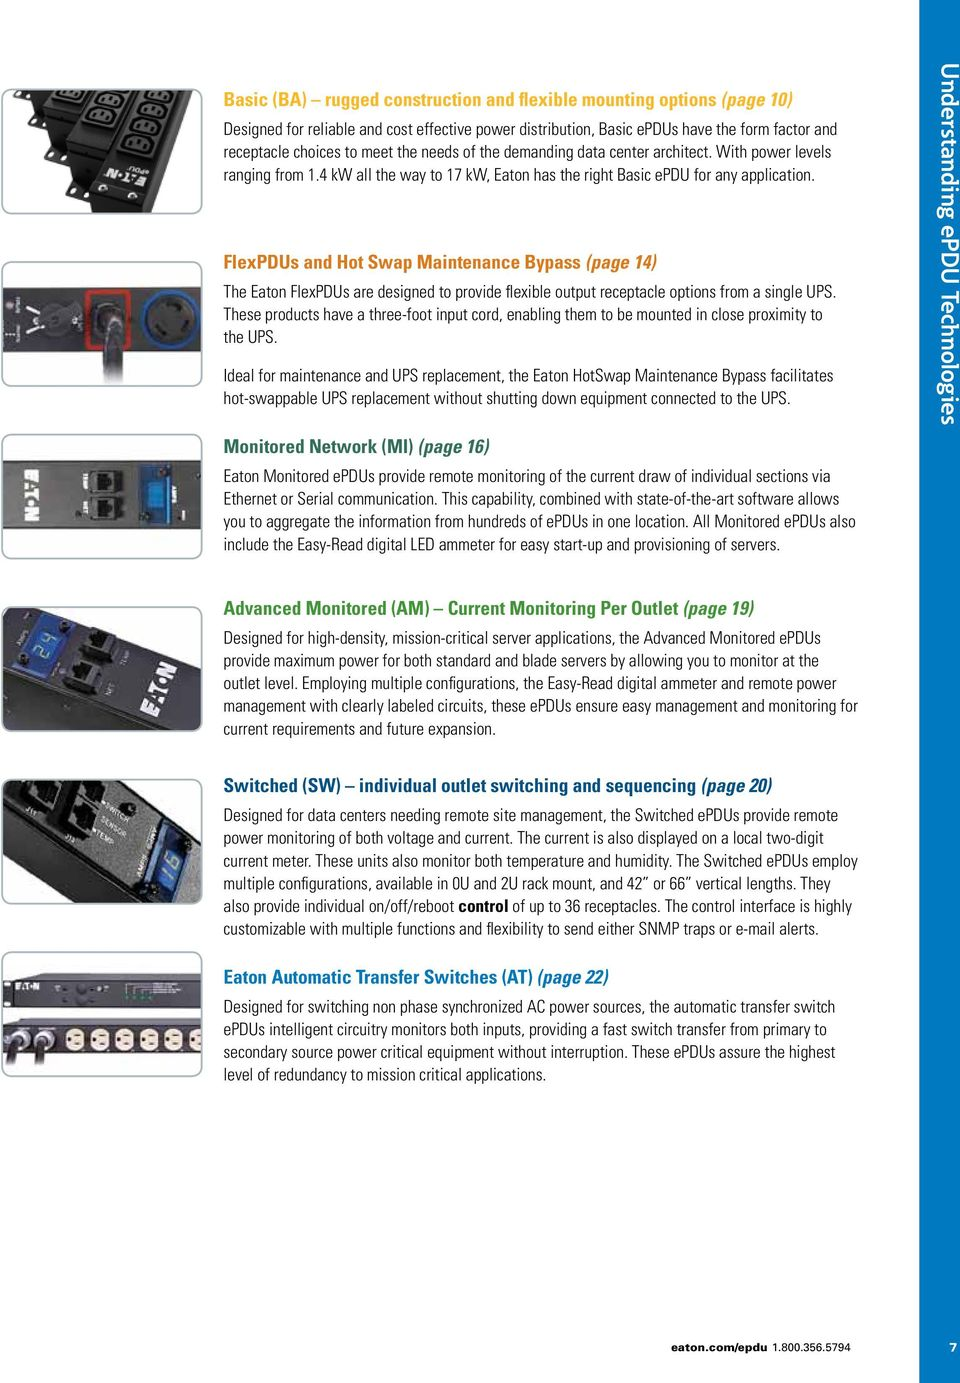 FlexPDUs and Hot Swap Maintenance Bypass (page 14) The Eaton FlexPDUs are designed to provide flexible output receptacle options from a single UPS.